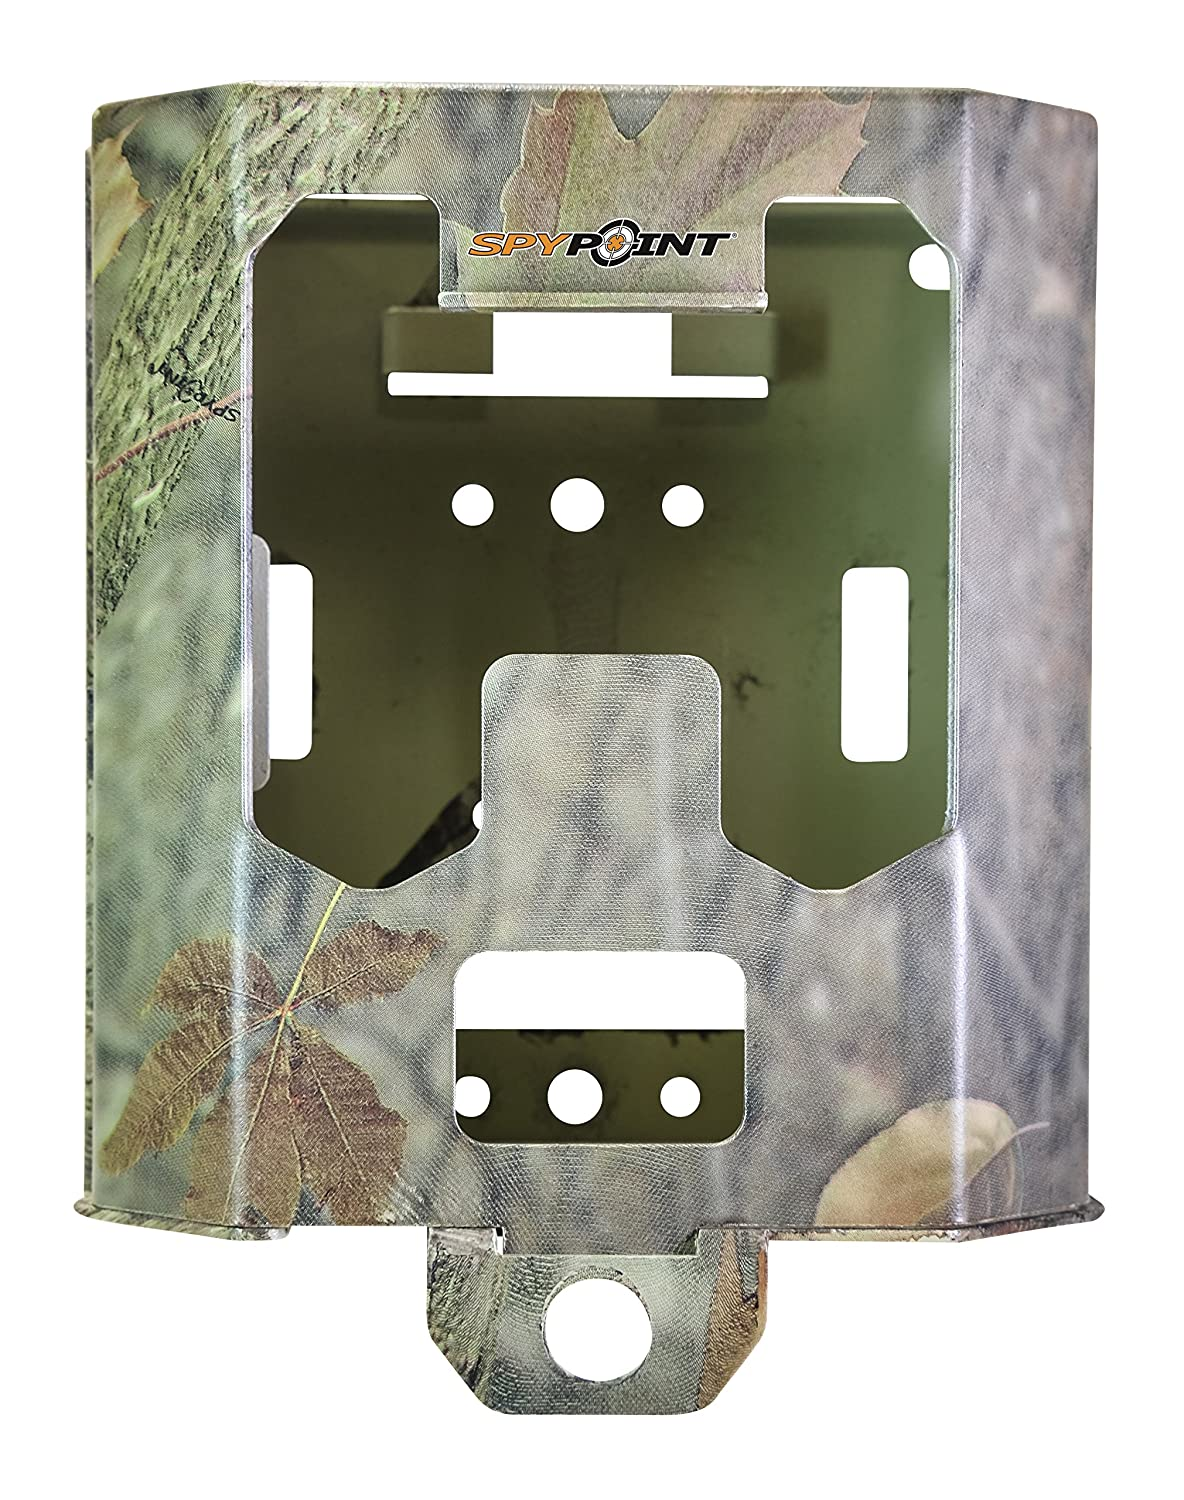 Spypoint SB-200 Security Box Fits All 42 LED Cameras, Camo .30-06 Outdoors